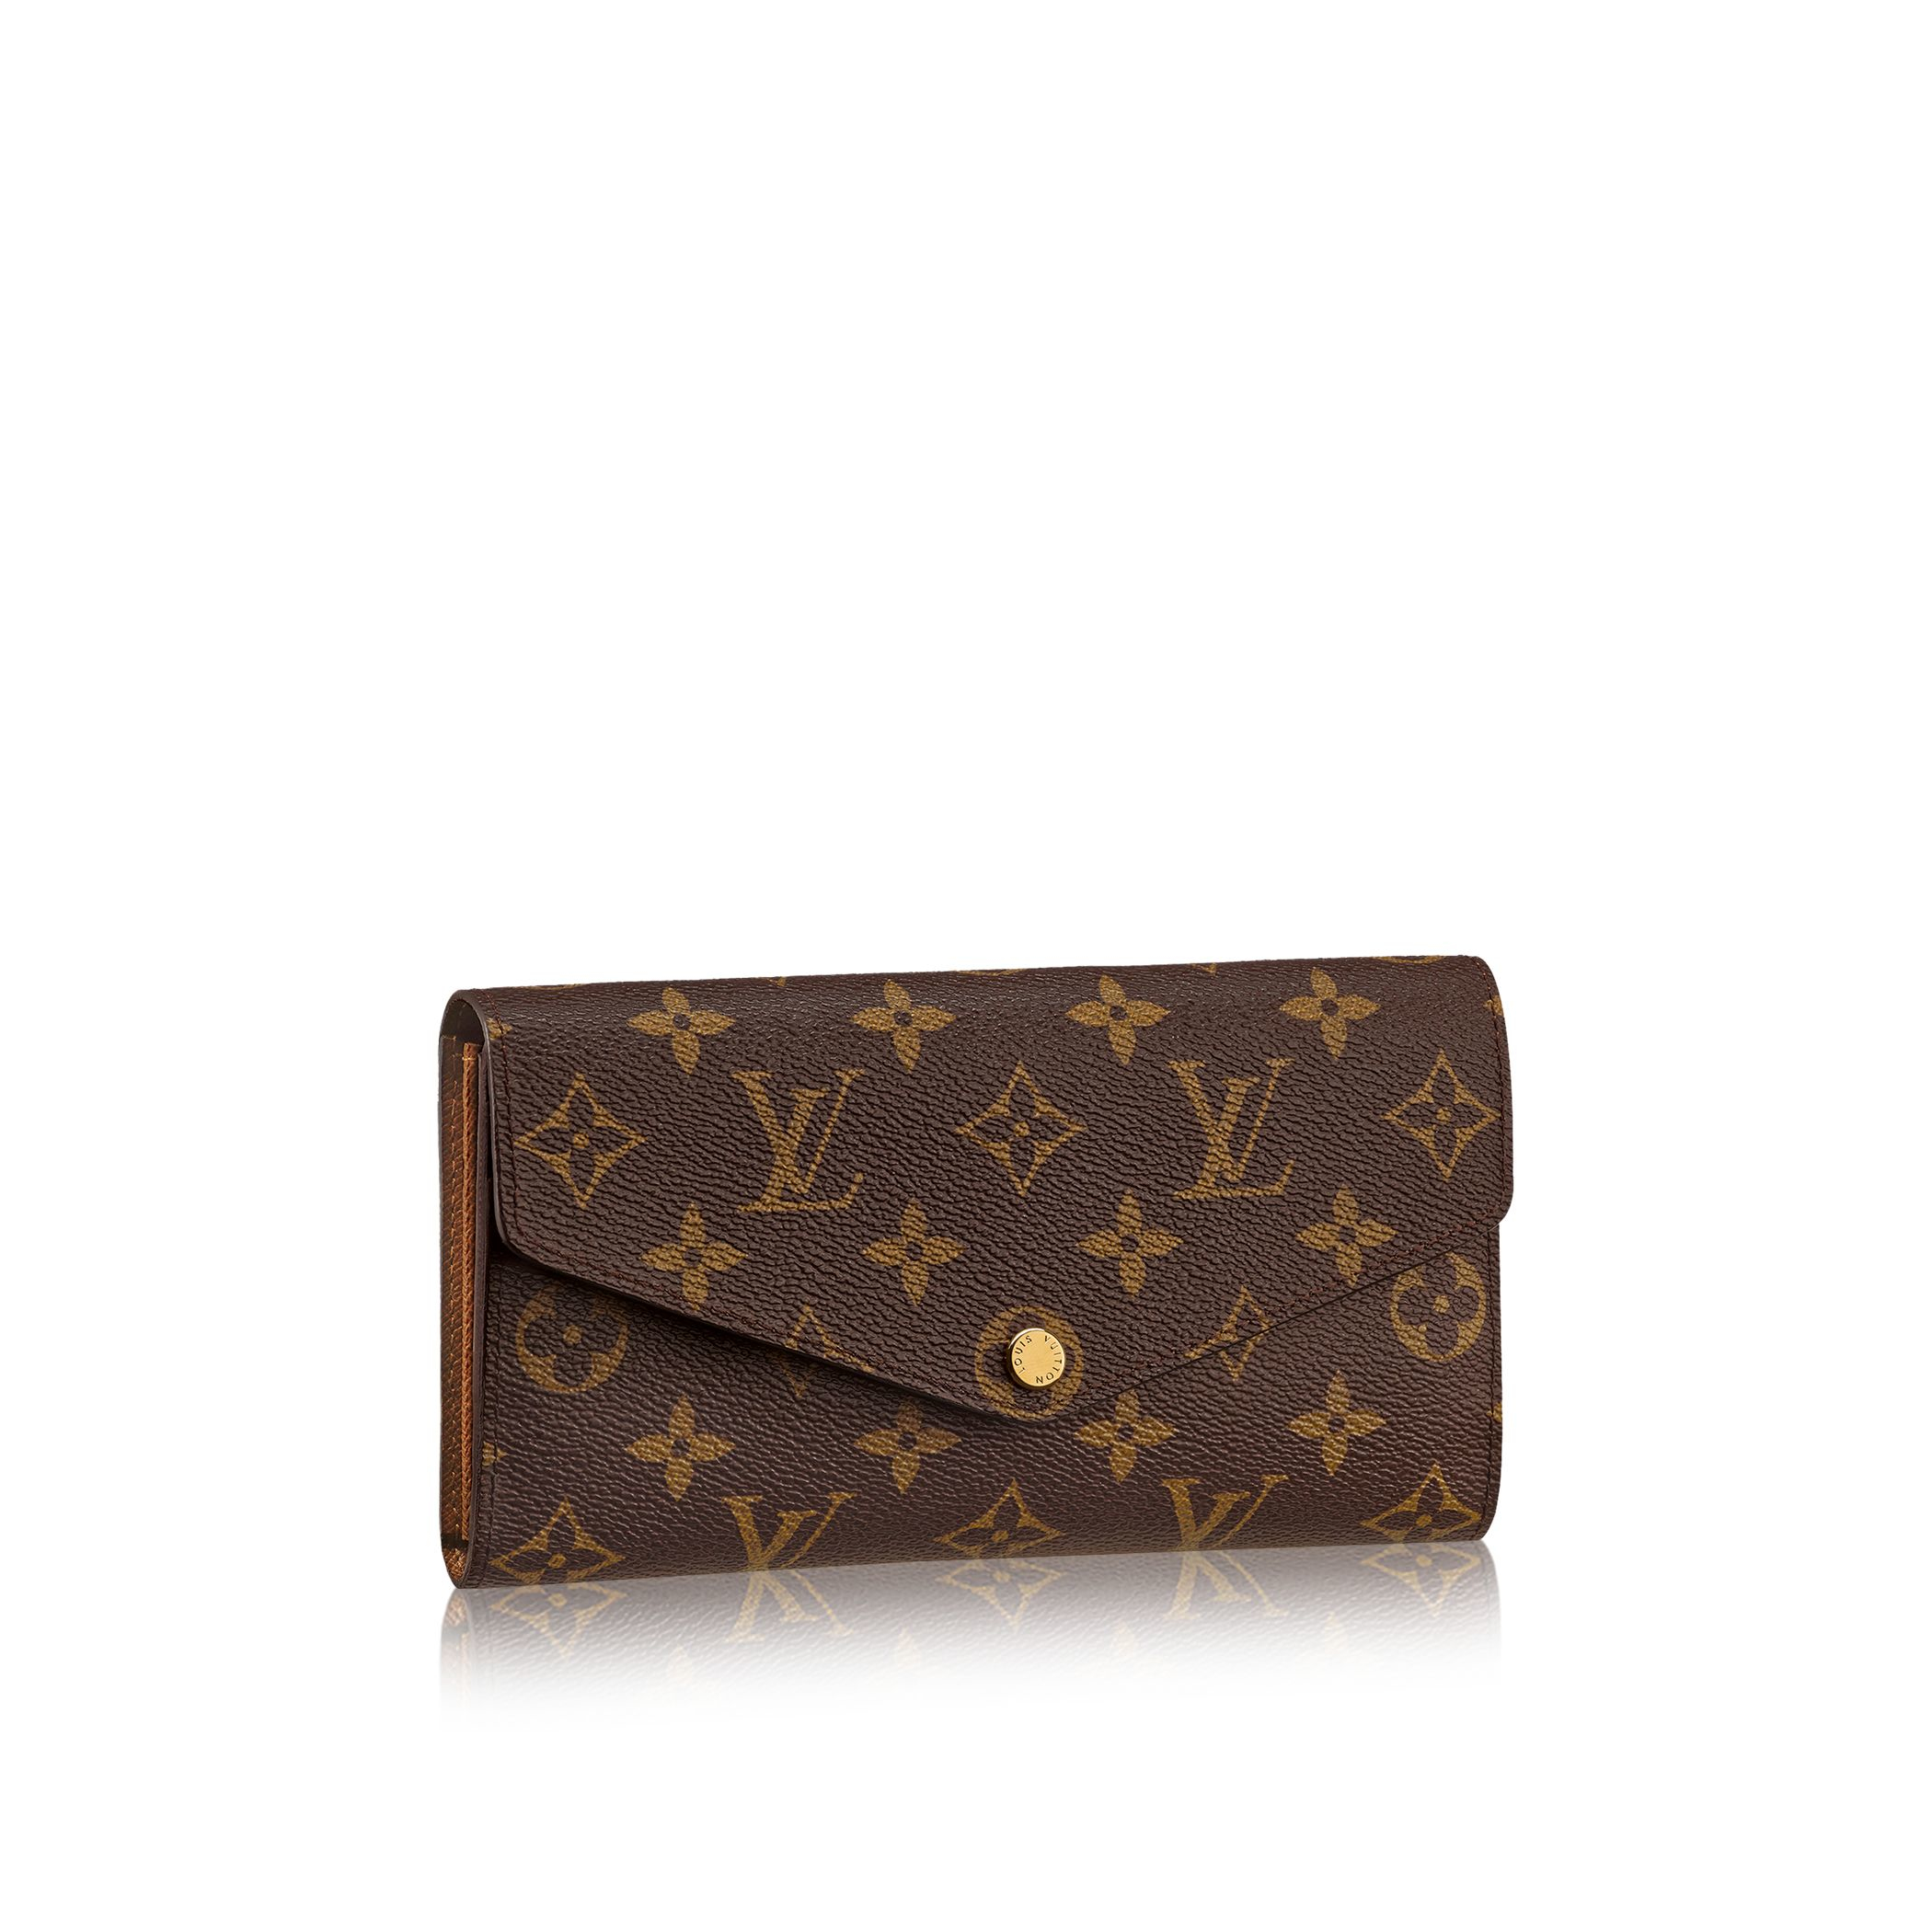 Louis vuitton Sarah Wallet in Brown | Lyst